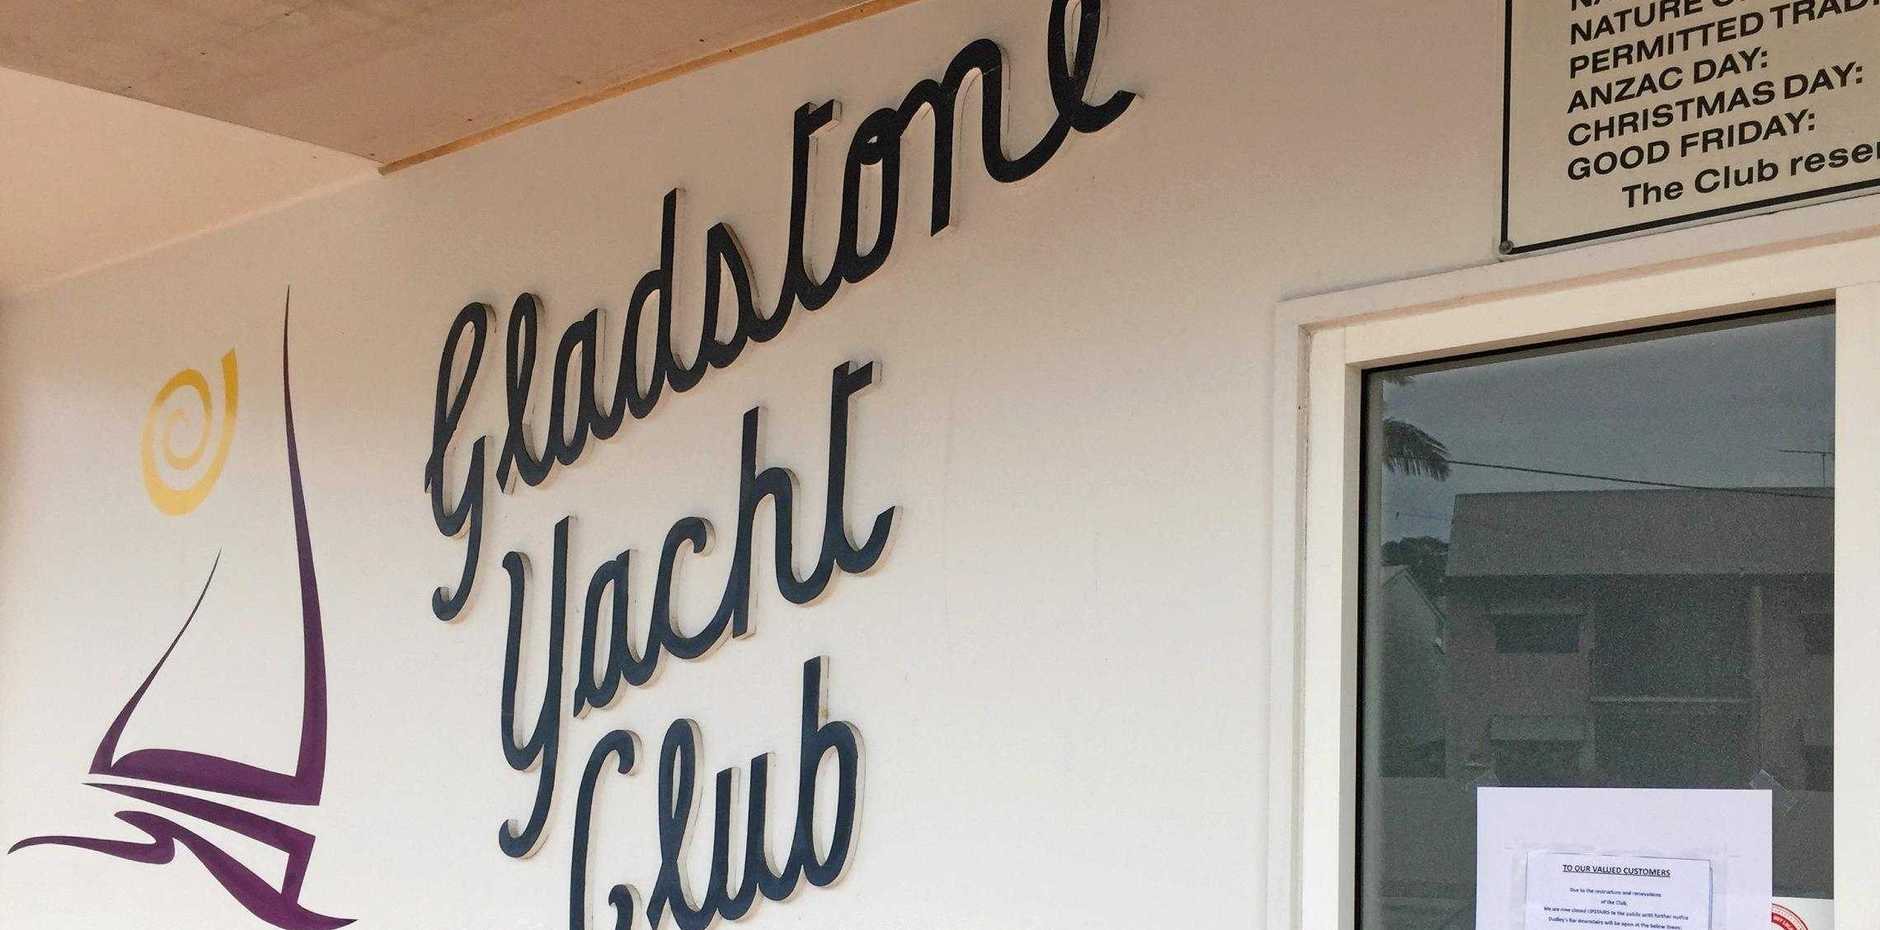 The Gladstone Yacht Club is operating under restricted hours while it undergoes renovations and financial restructuring.